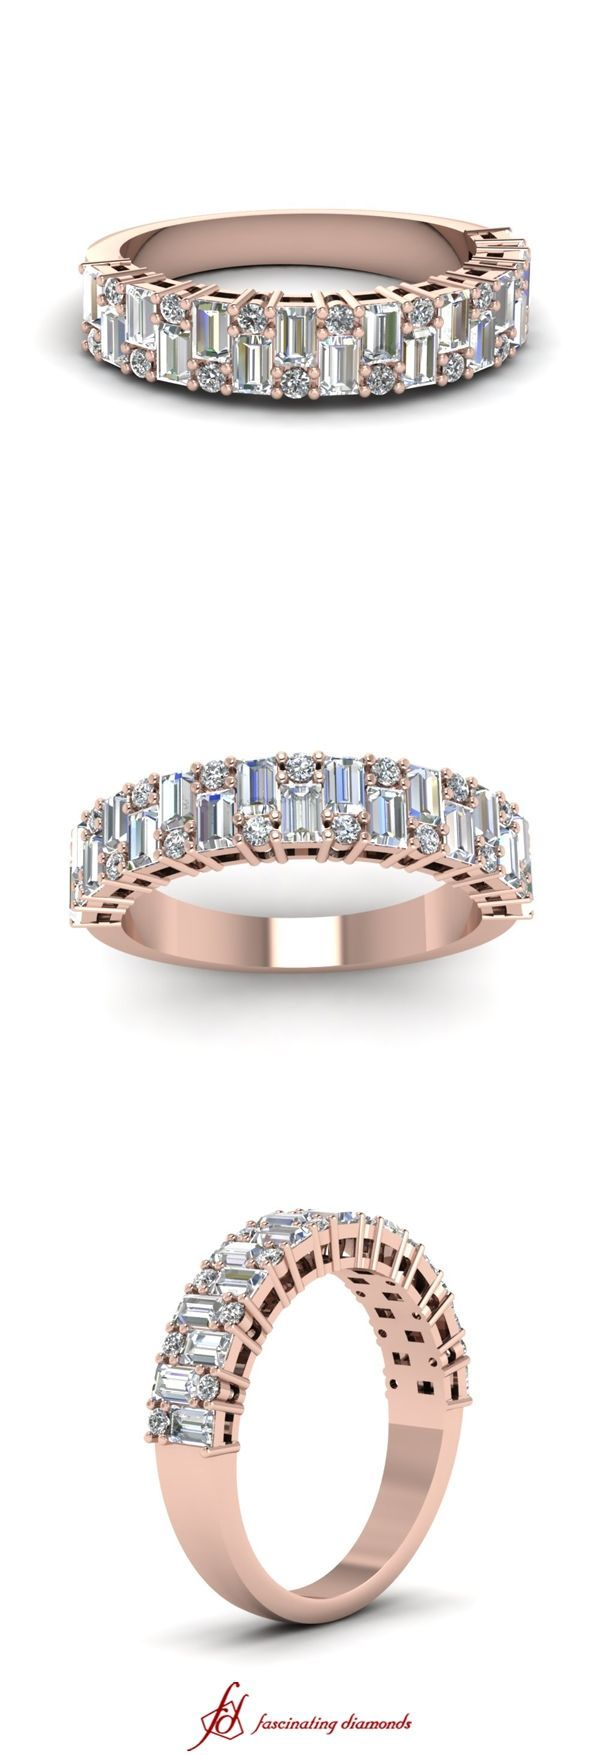 Baguette Rapture Ban Baguette Rapture Band || White Diamond Wedding Band In 14K Rose Gold